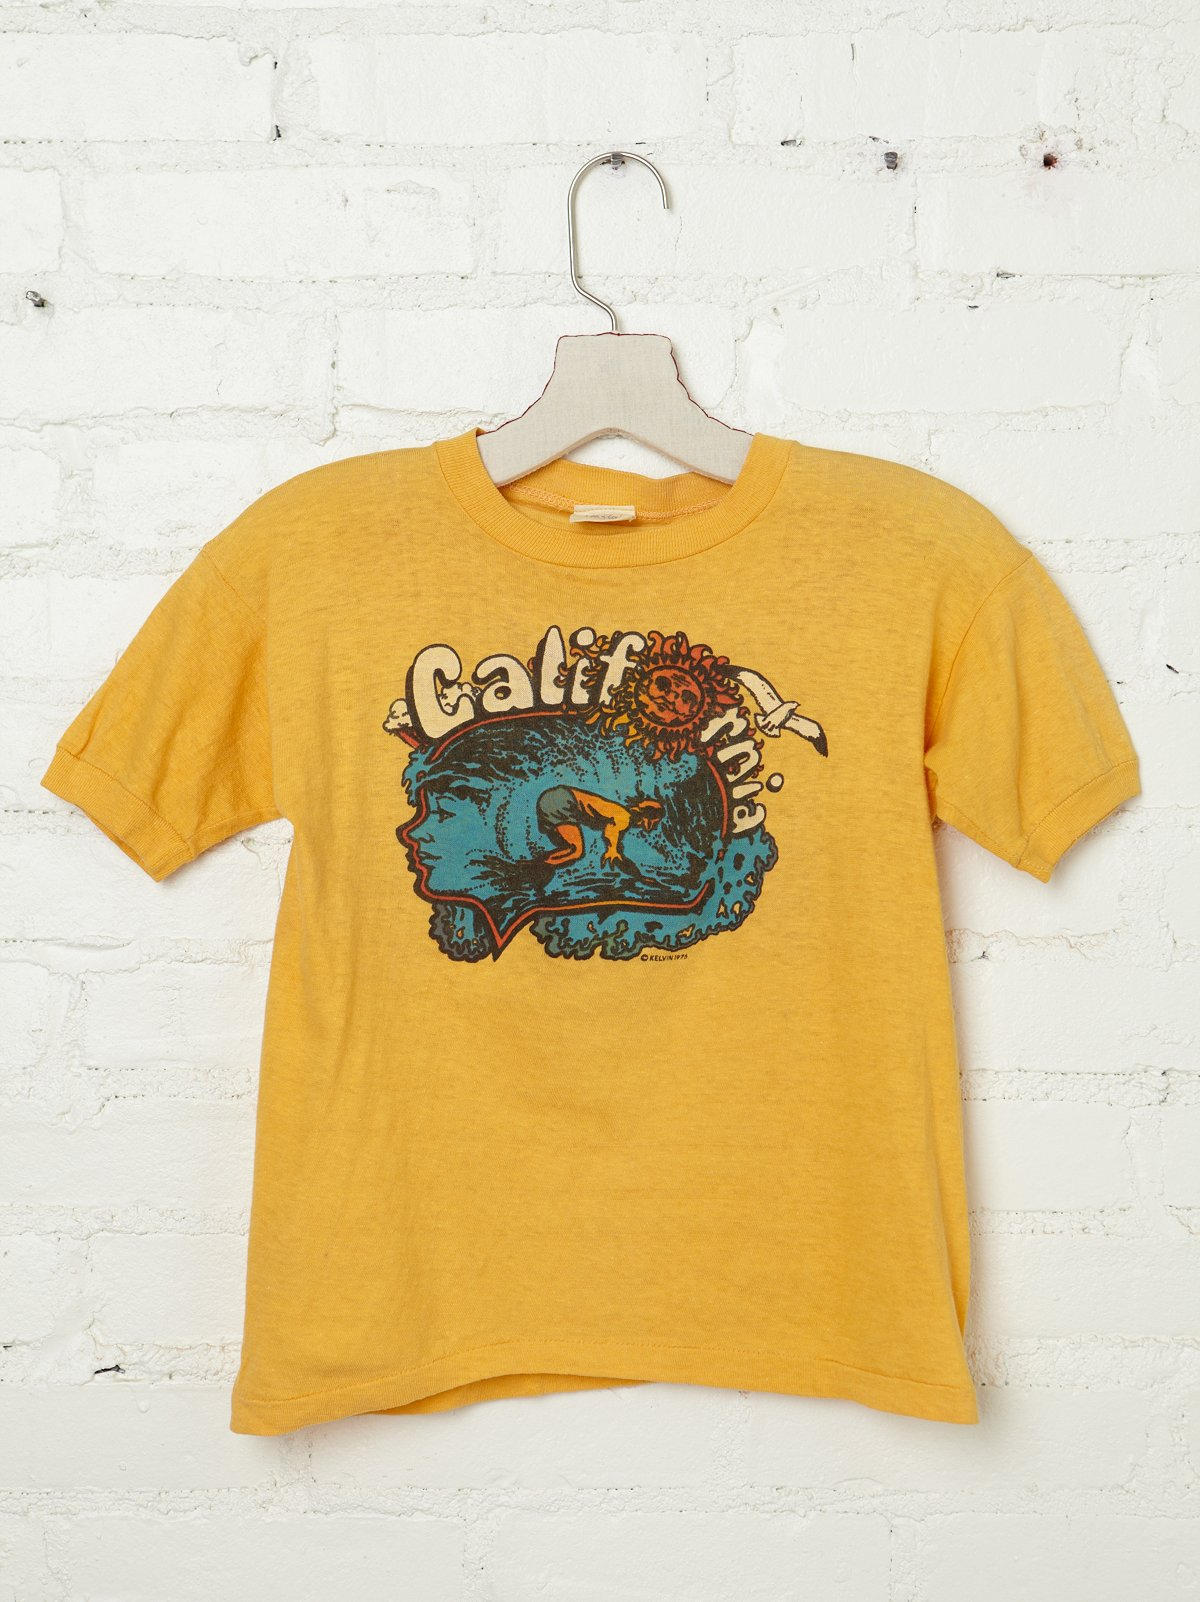 Vintage California Surfing Tee